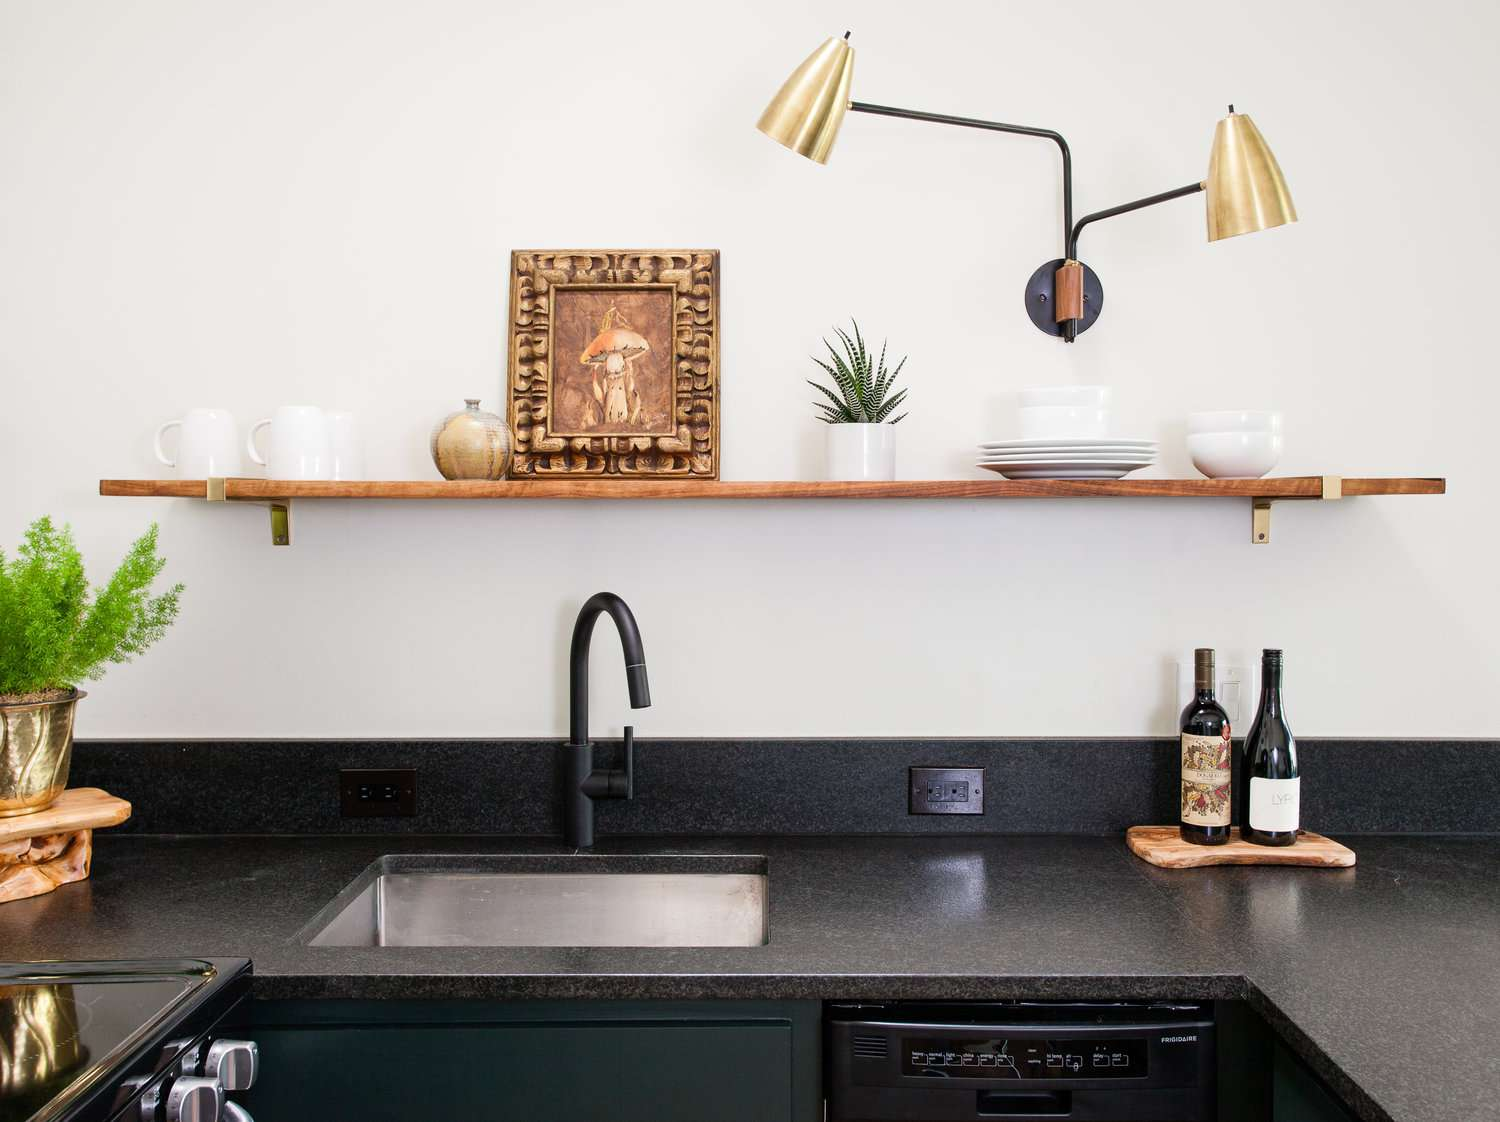 A kitchen with black marble countertops, a low-profile wood shelf, and a contemporary gold sconce